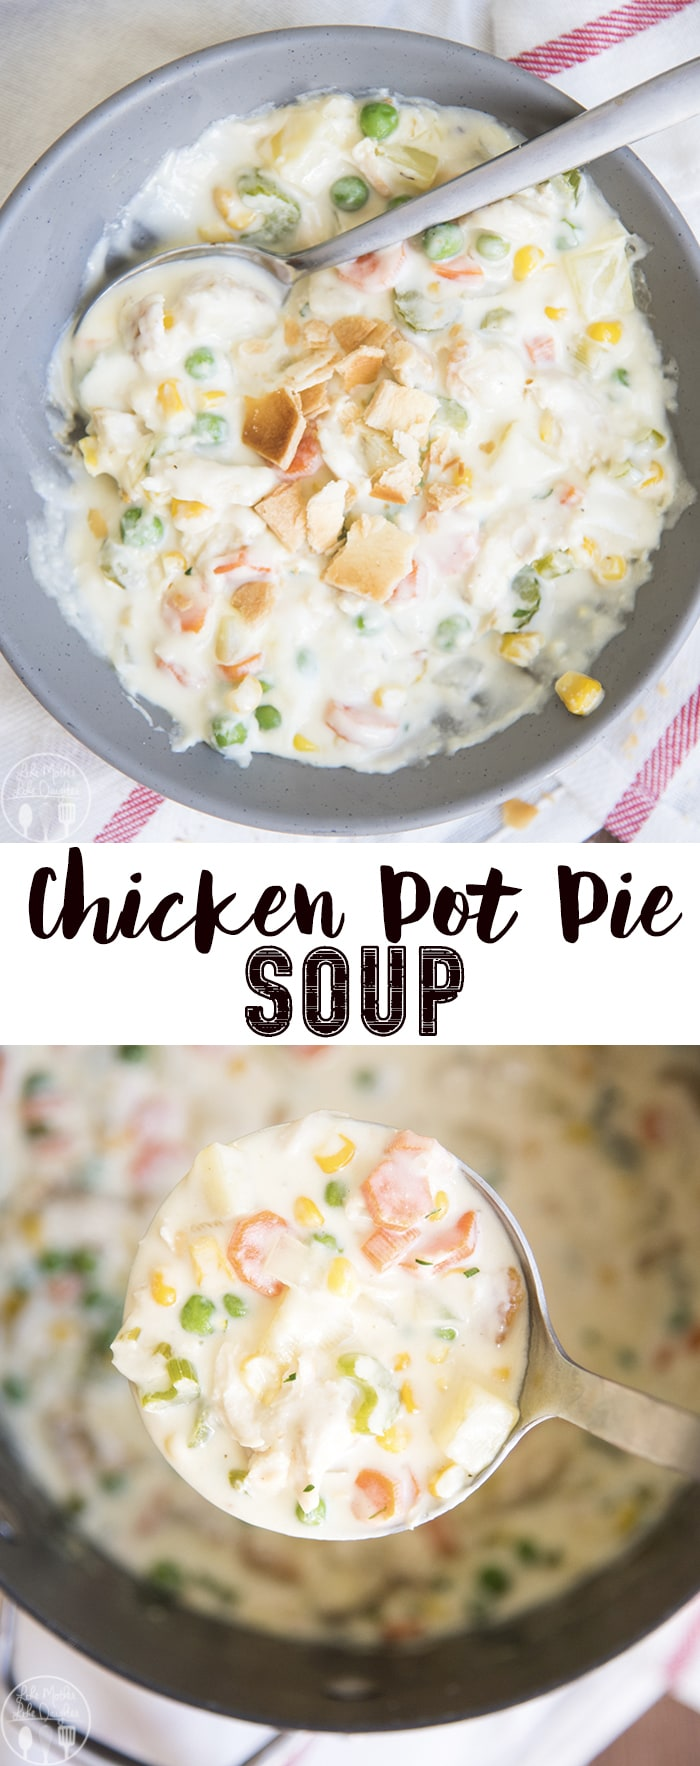 This chicken pot pie soup is an easy, creamy, and rich soup that is bursting with flavor! Its packed full of vegetables, and shredded chicken, and all topped with pie crust pieces for the perfect twist on the comforting classic dish!